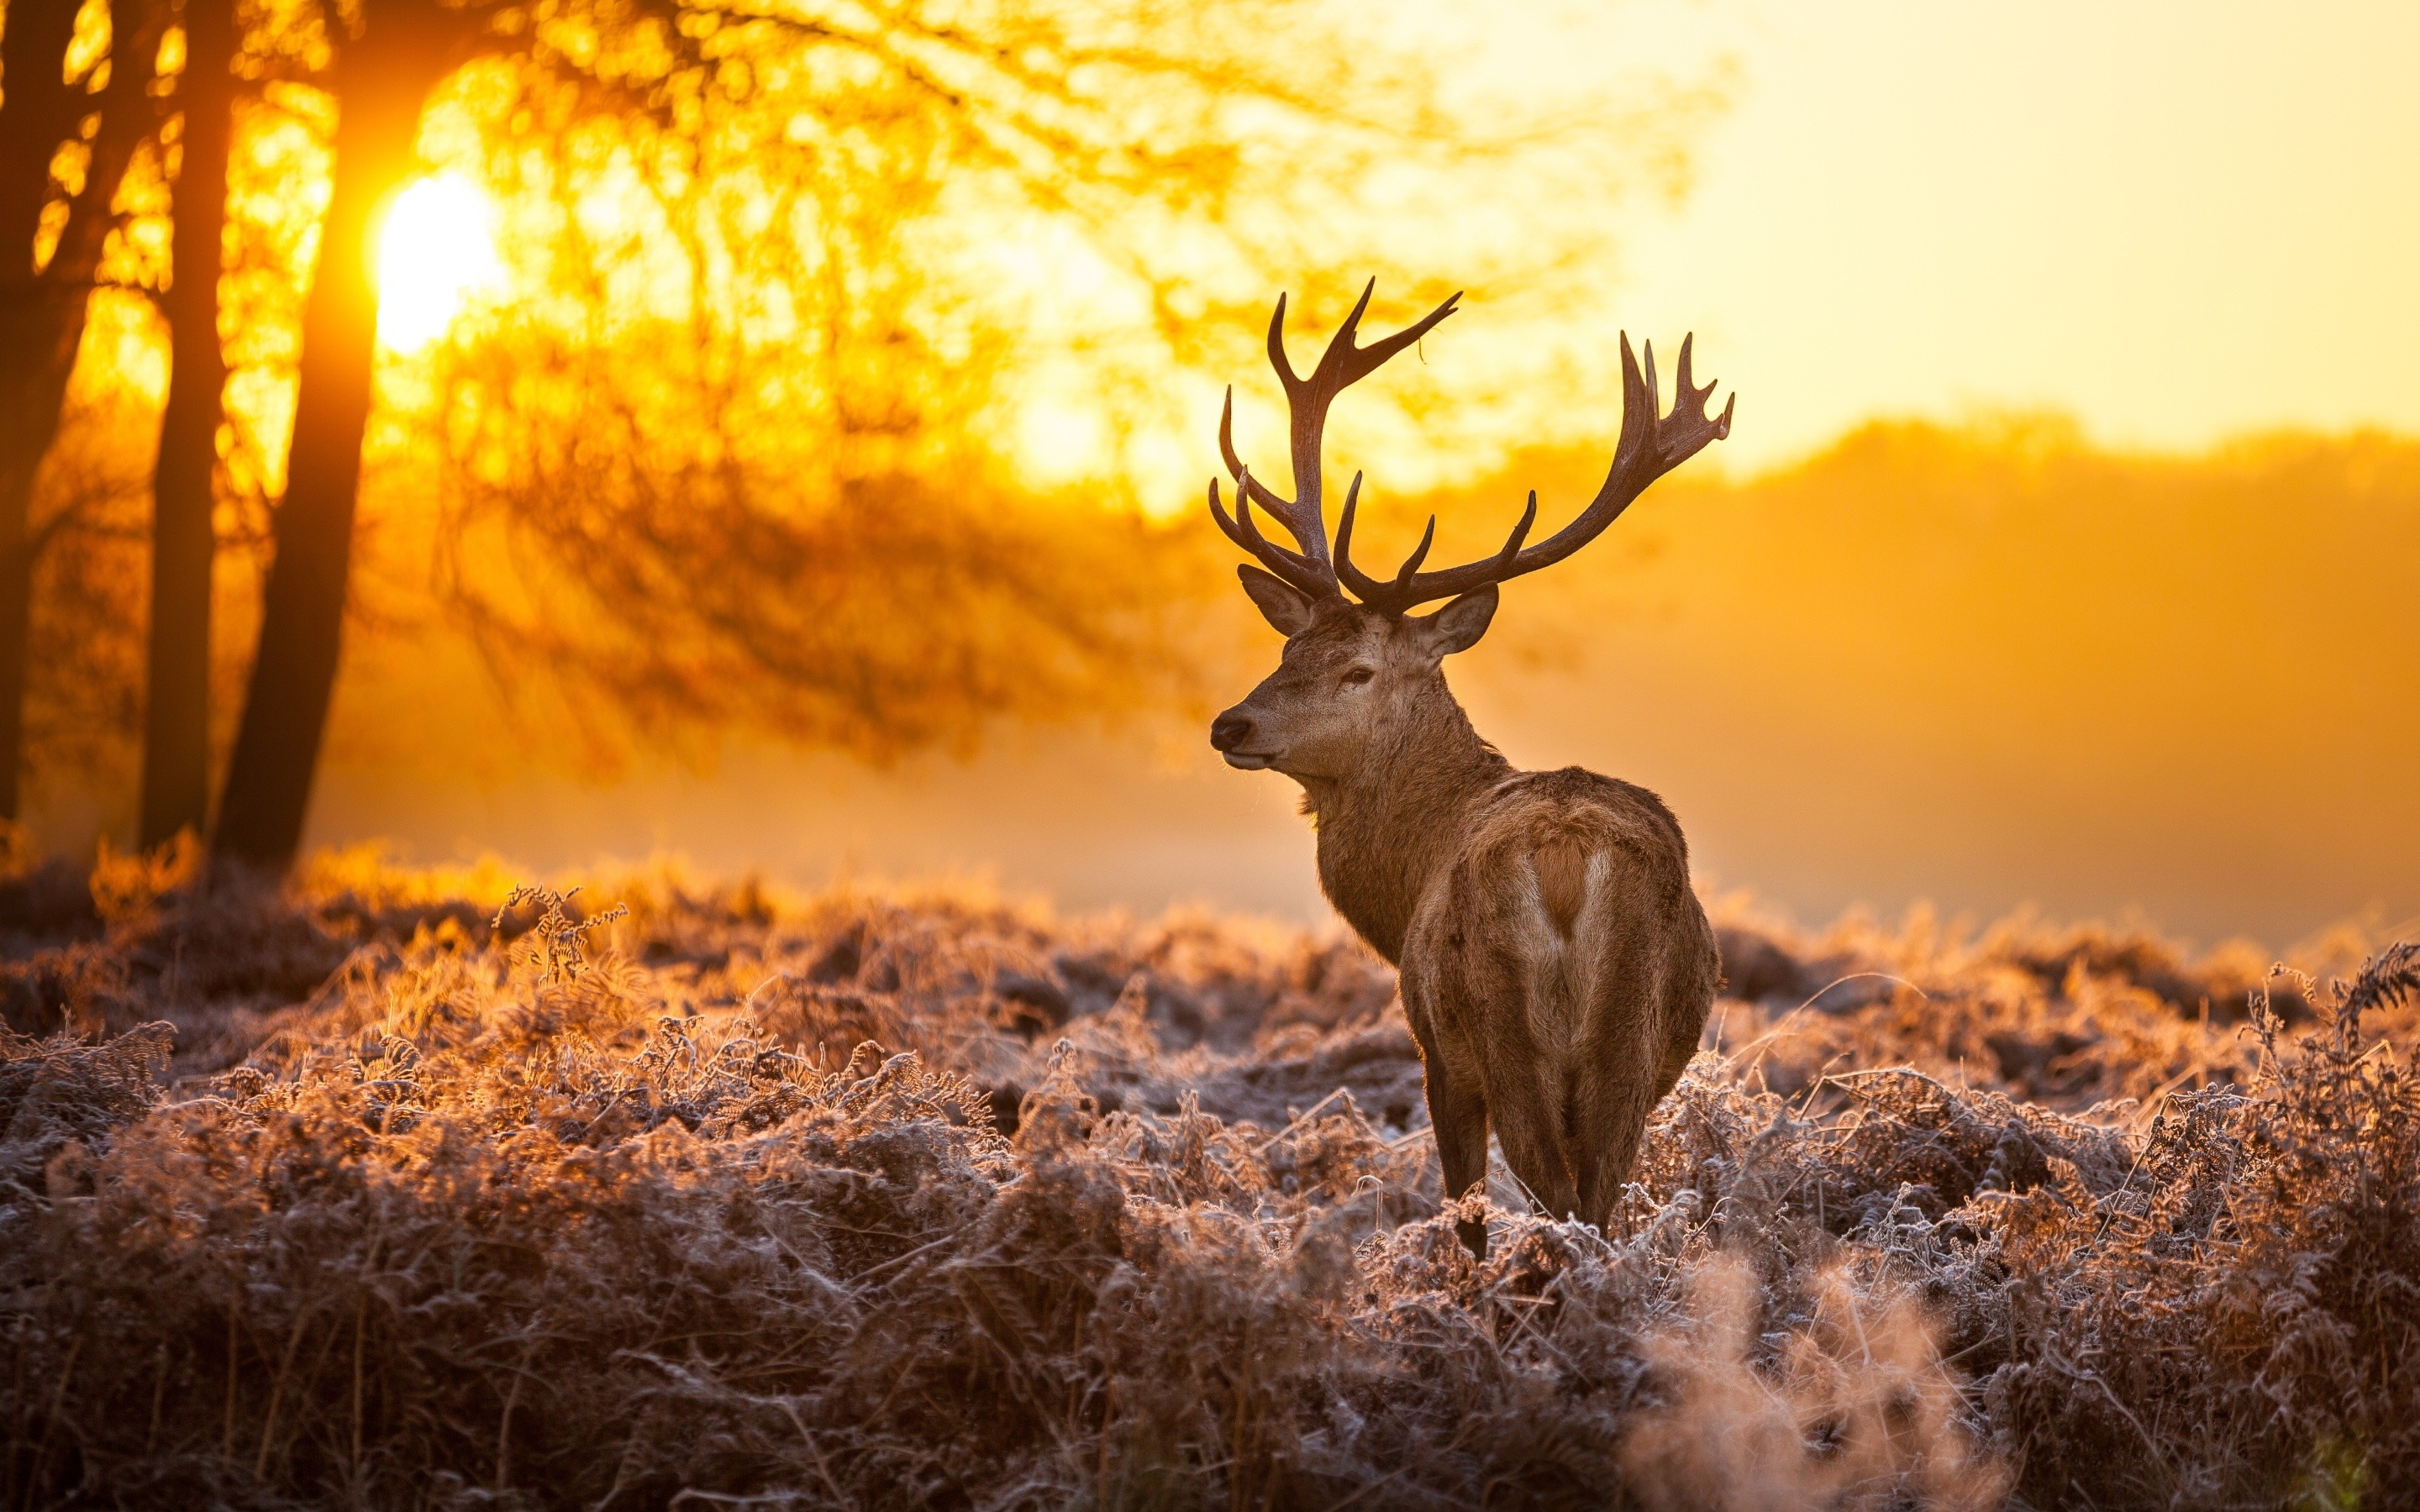 2880x1800 Deer Wallpapers : Get Free top quality Deer Wallpapers for your desktop PC  background, ios